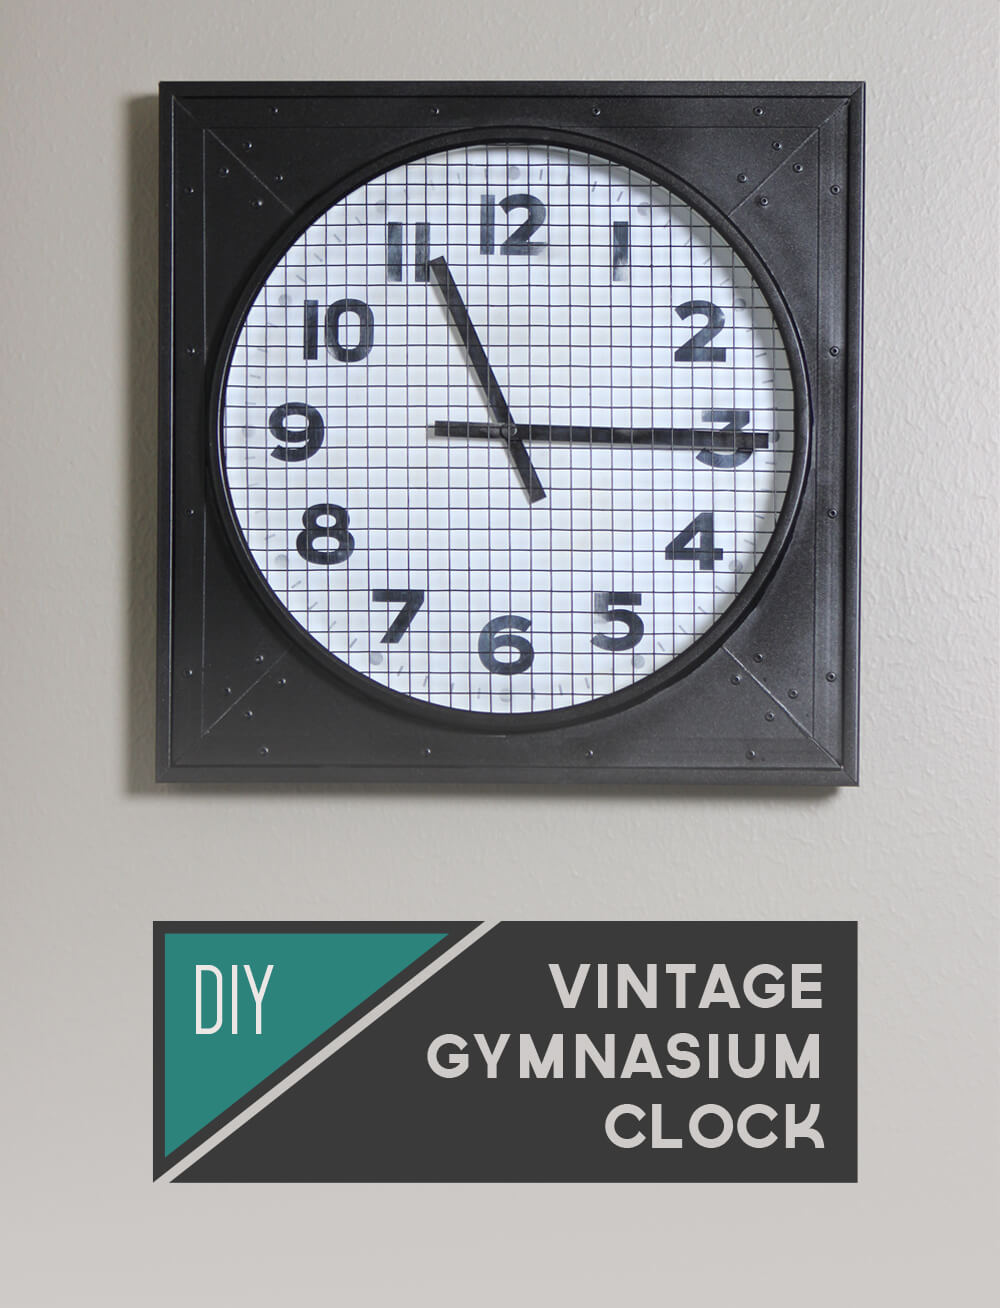 DIY Vintage Gymnasium Clock